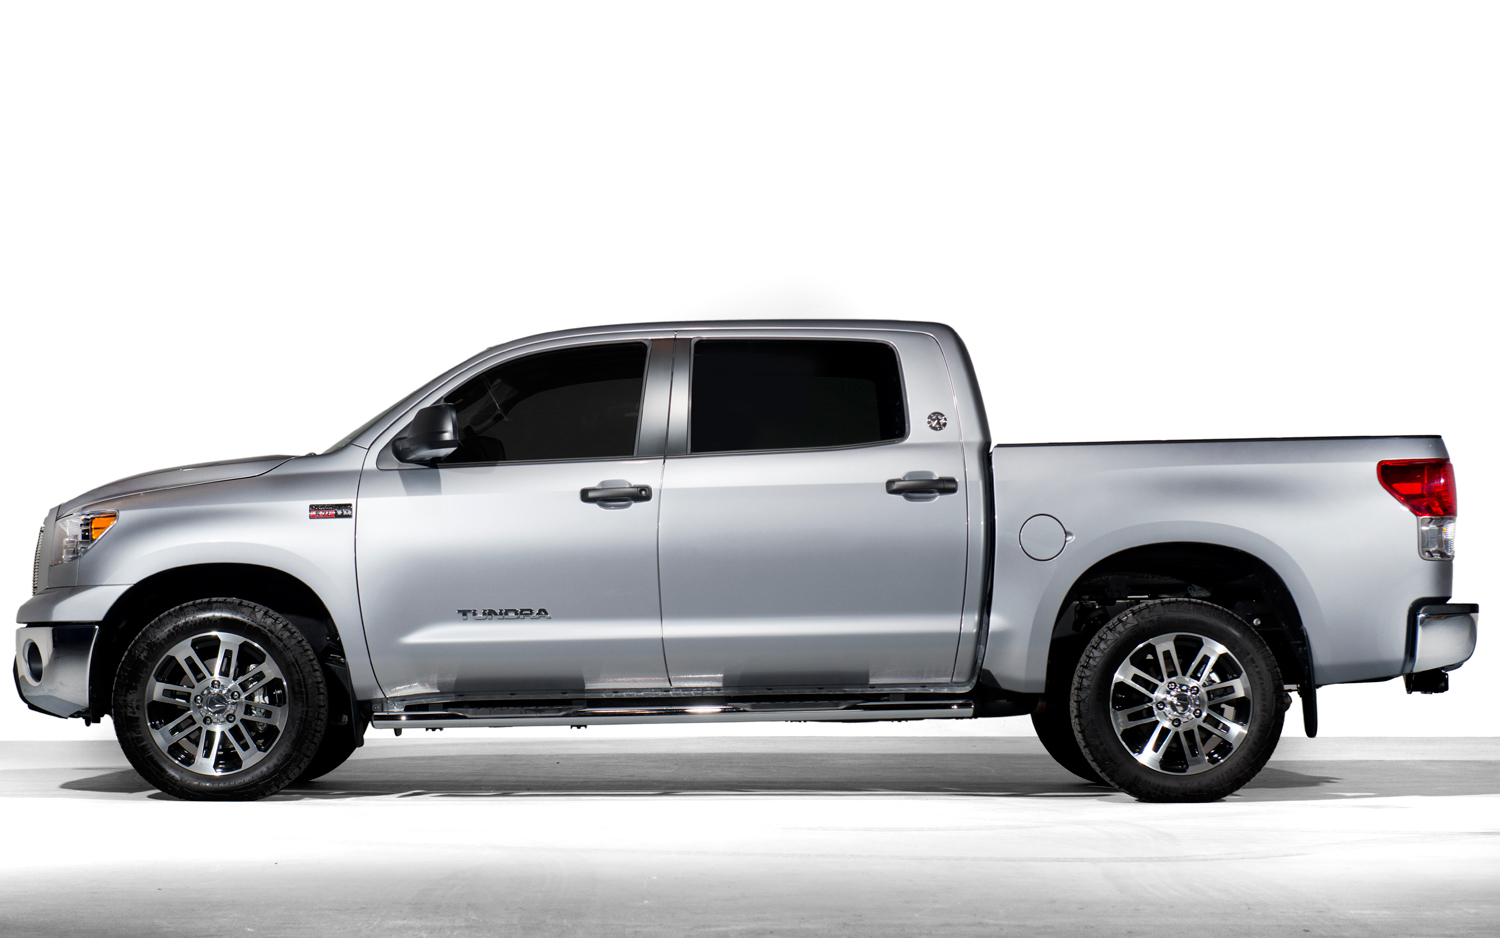 Toyota Tundra 2013 photo - 5